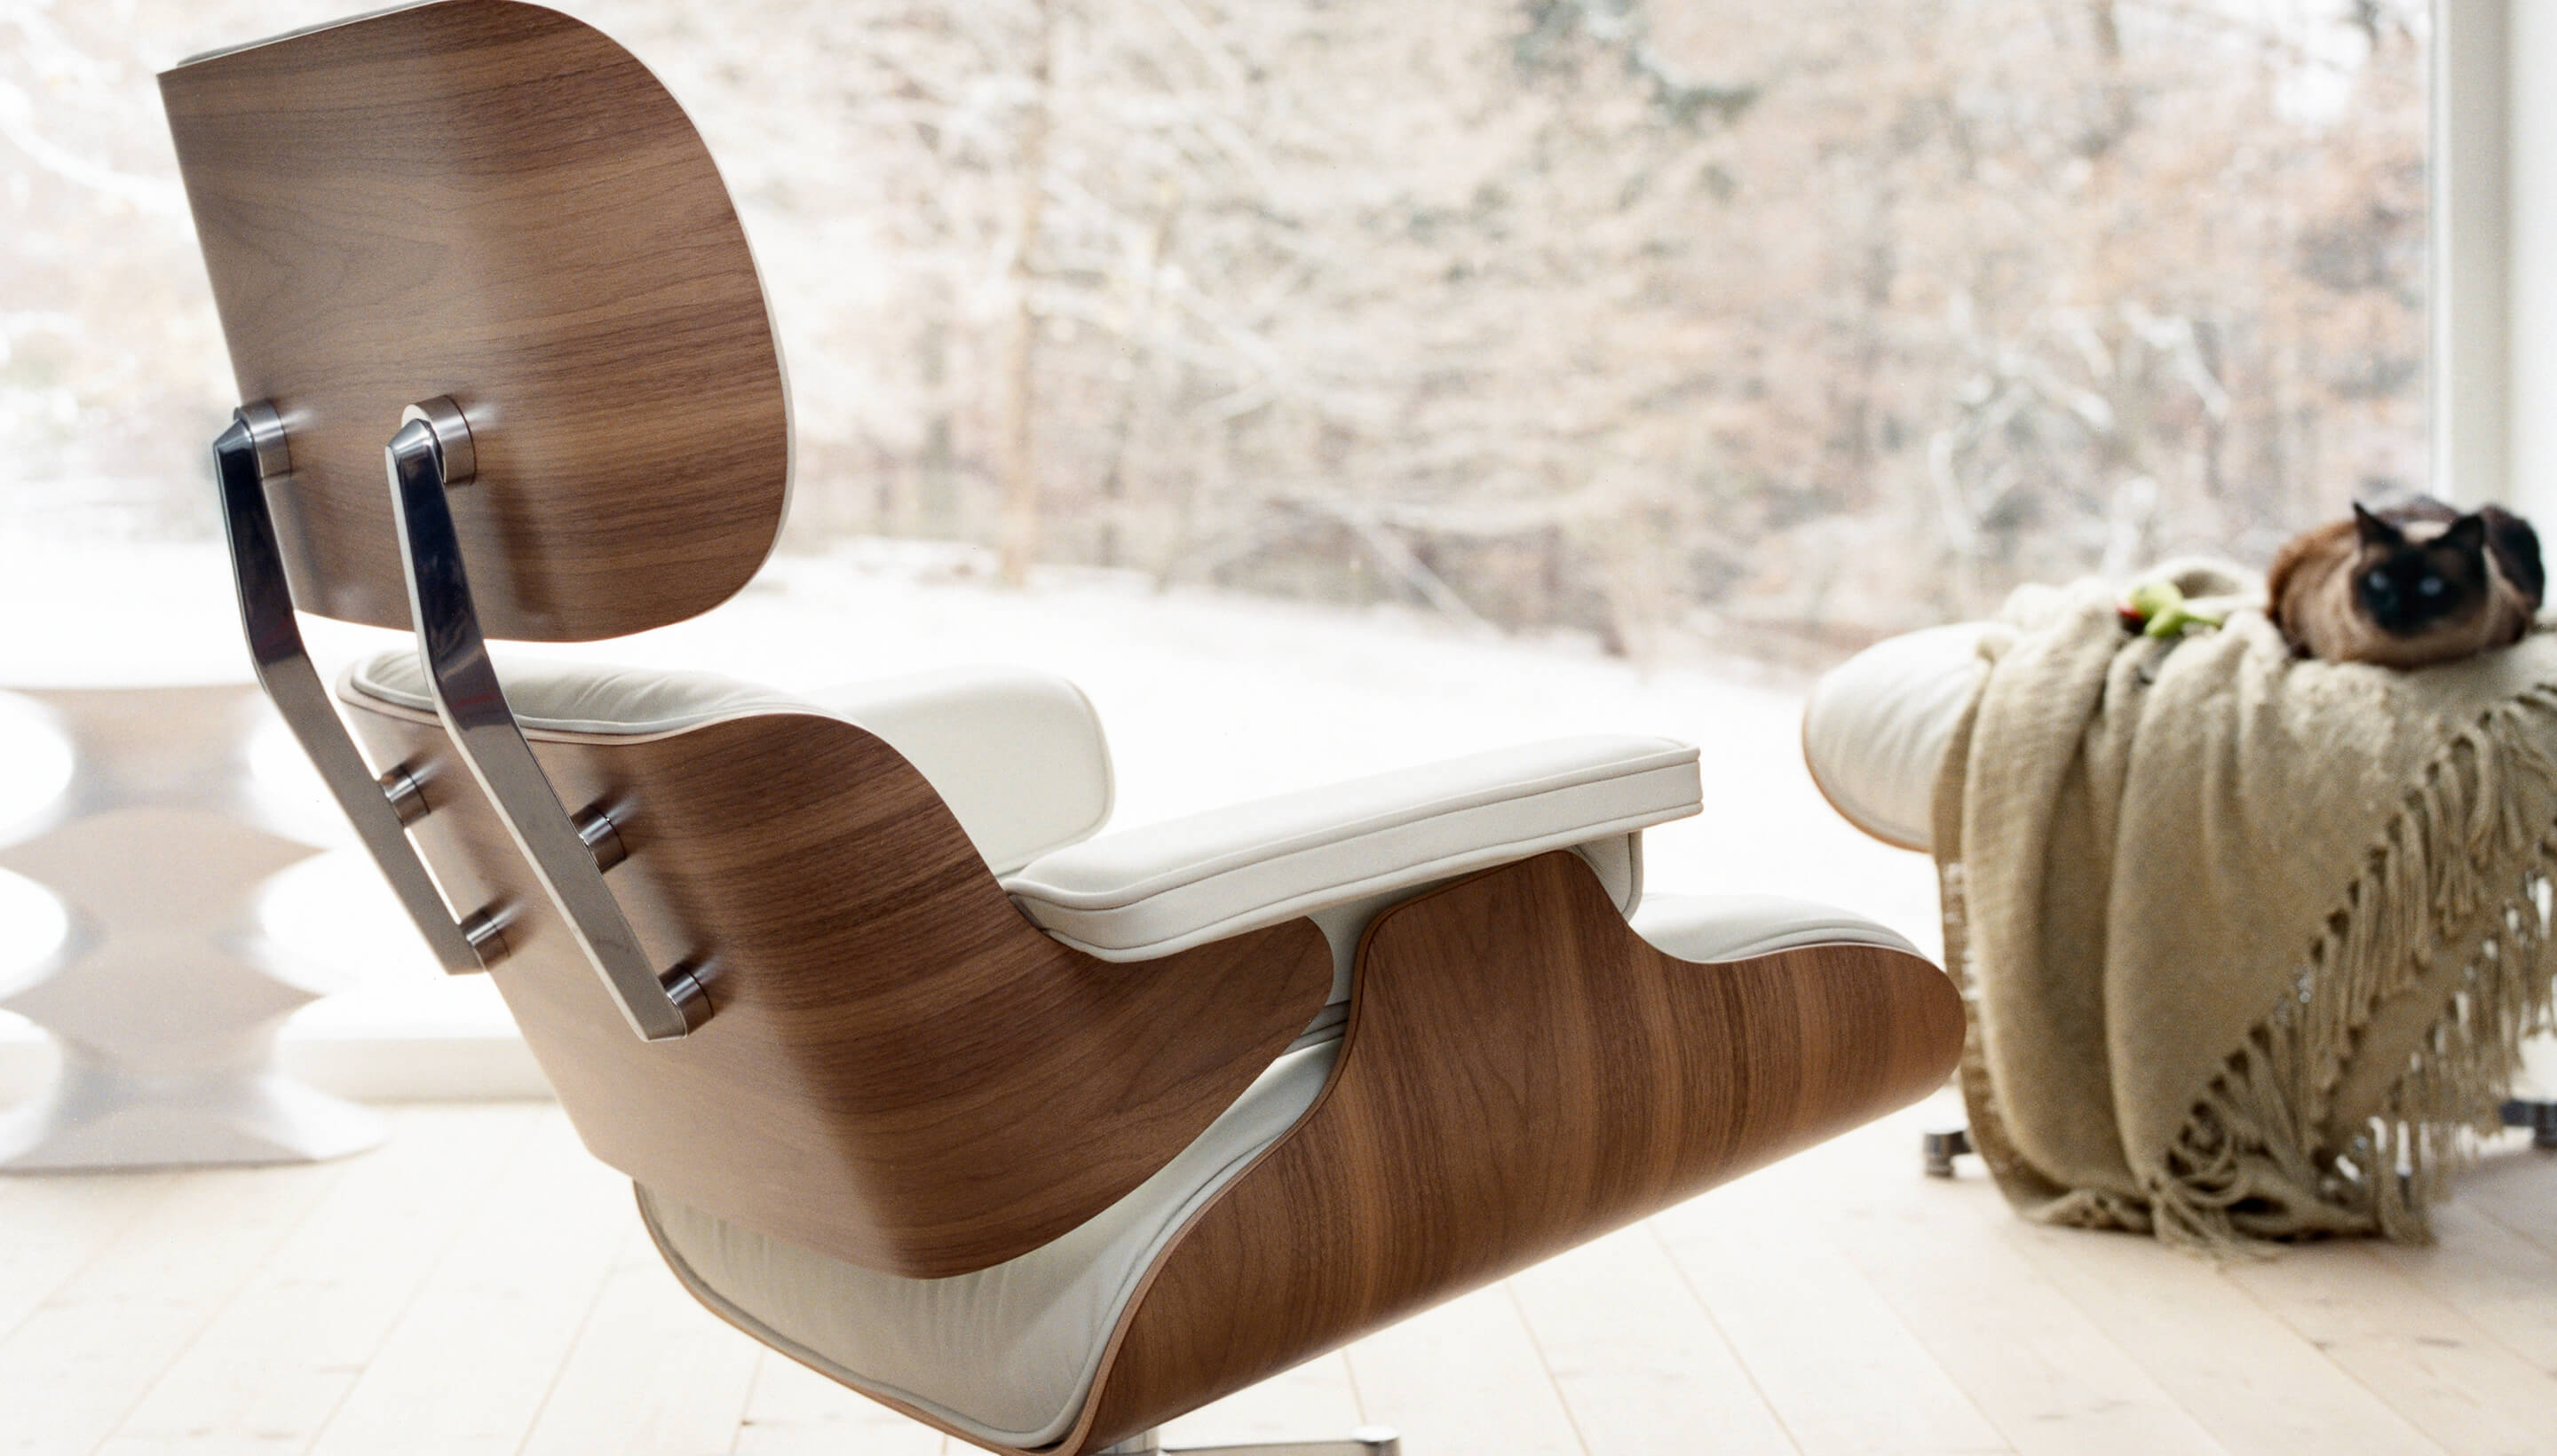 Vitra Stoel Wit : Vitra lounge chair notenhout wit workbrands